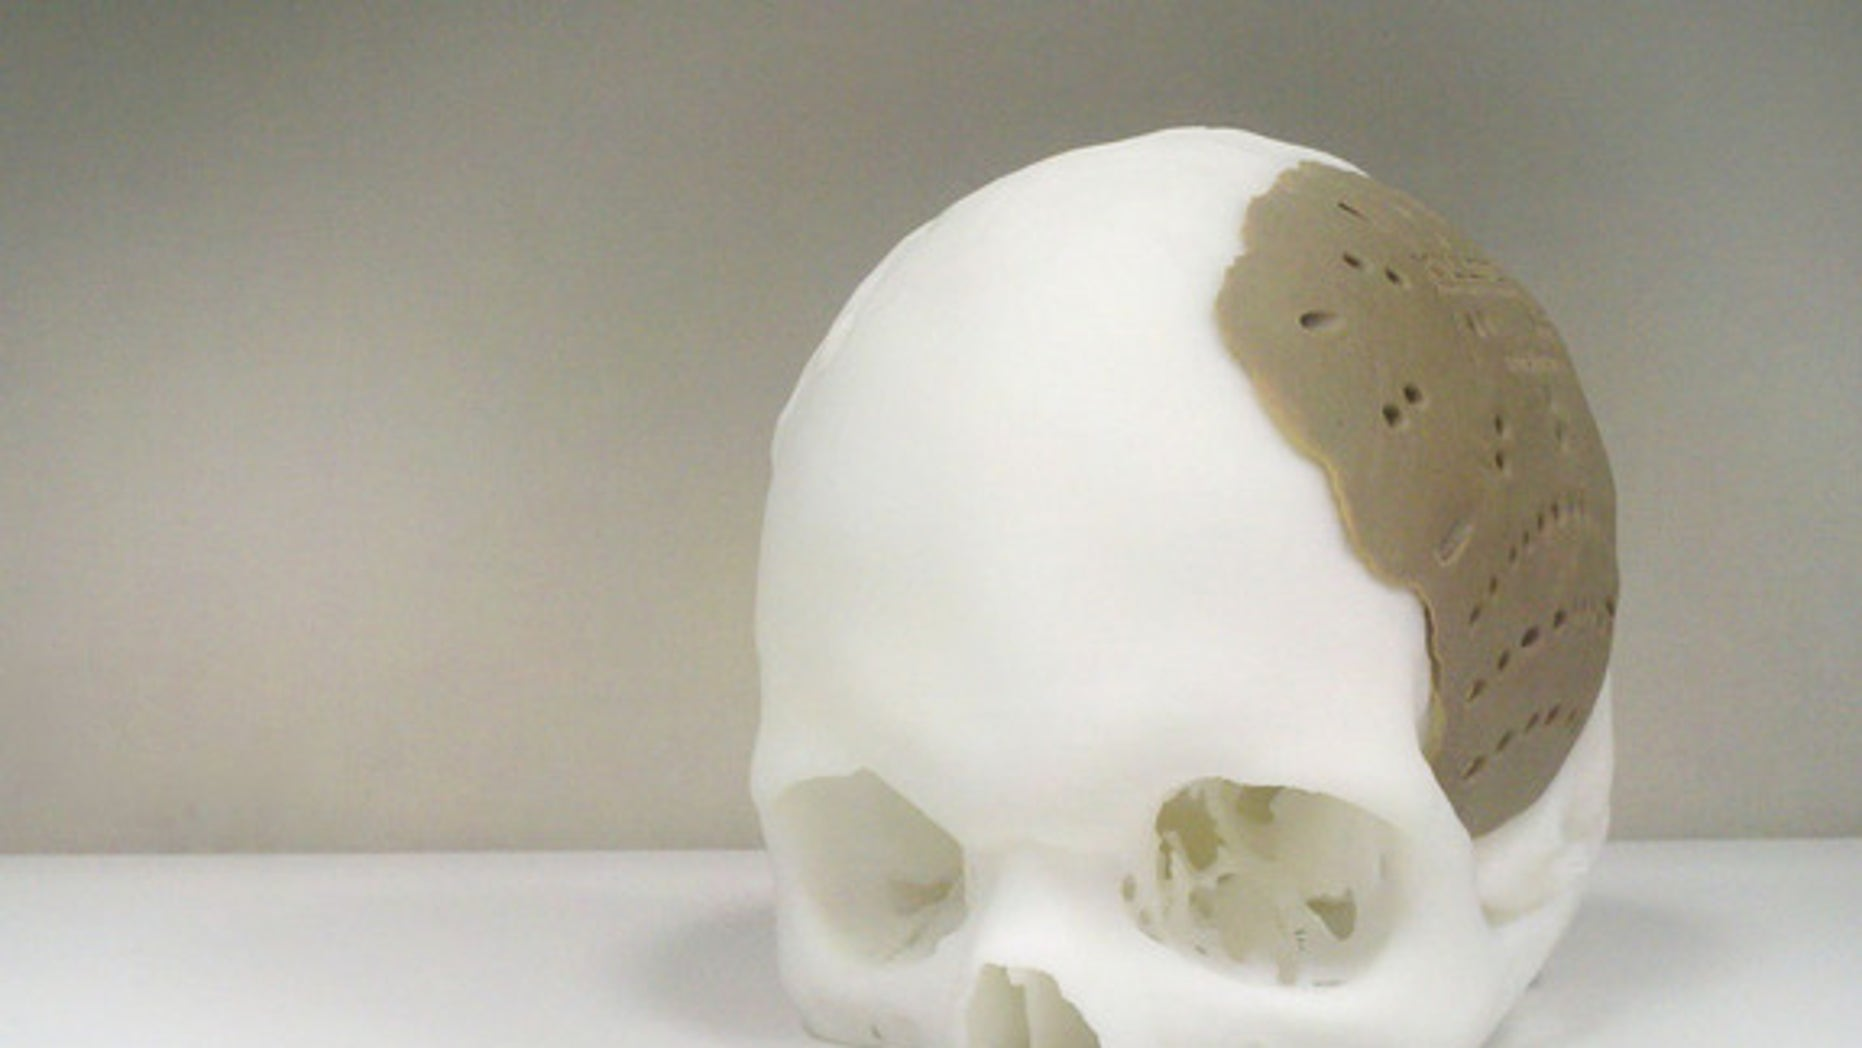 A 3D-printed skull implant.